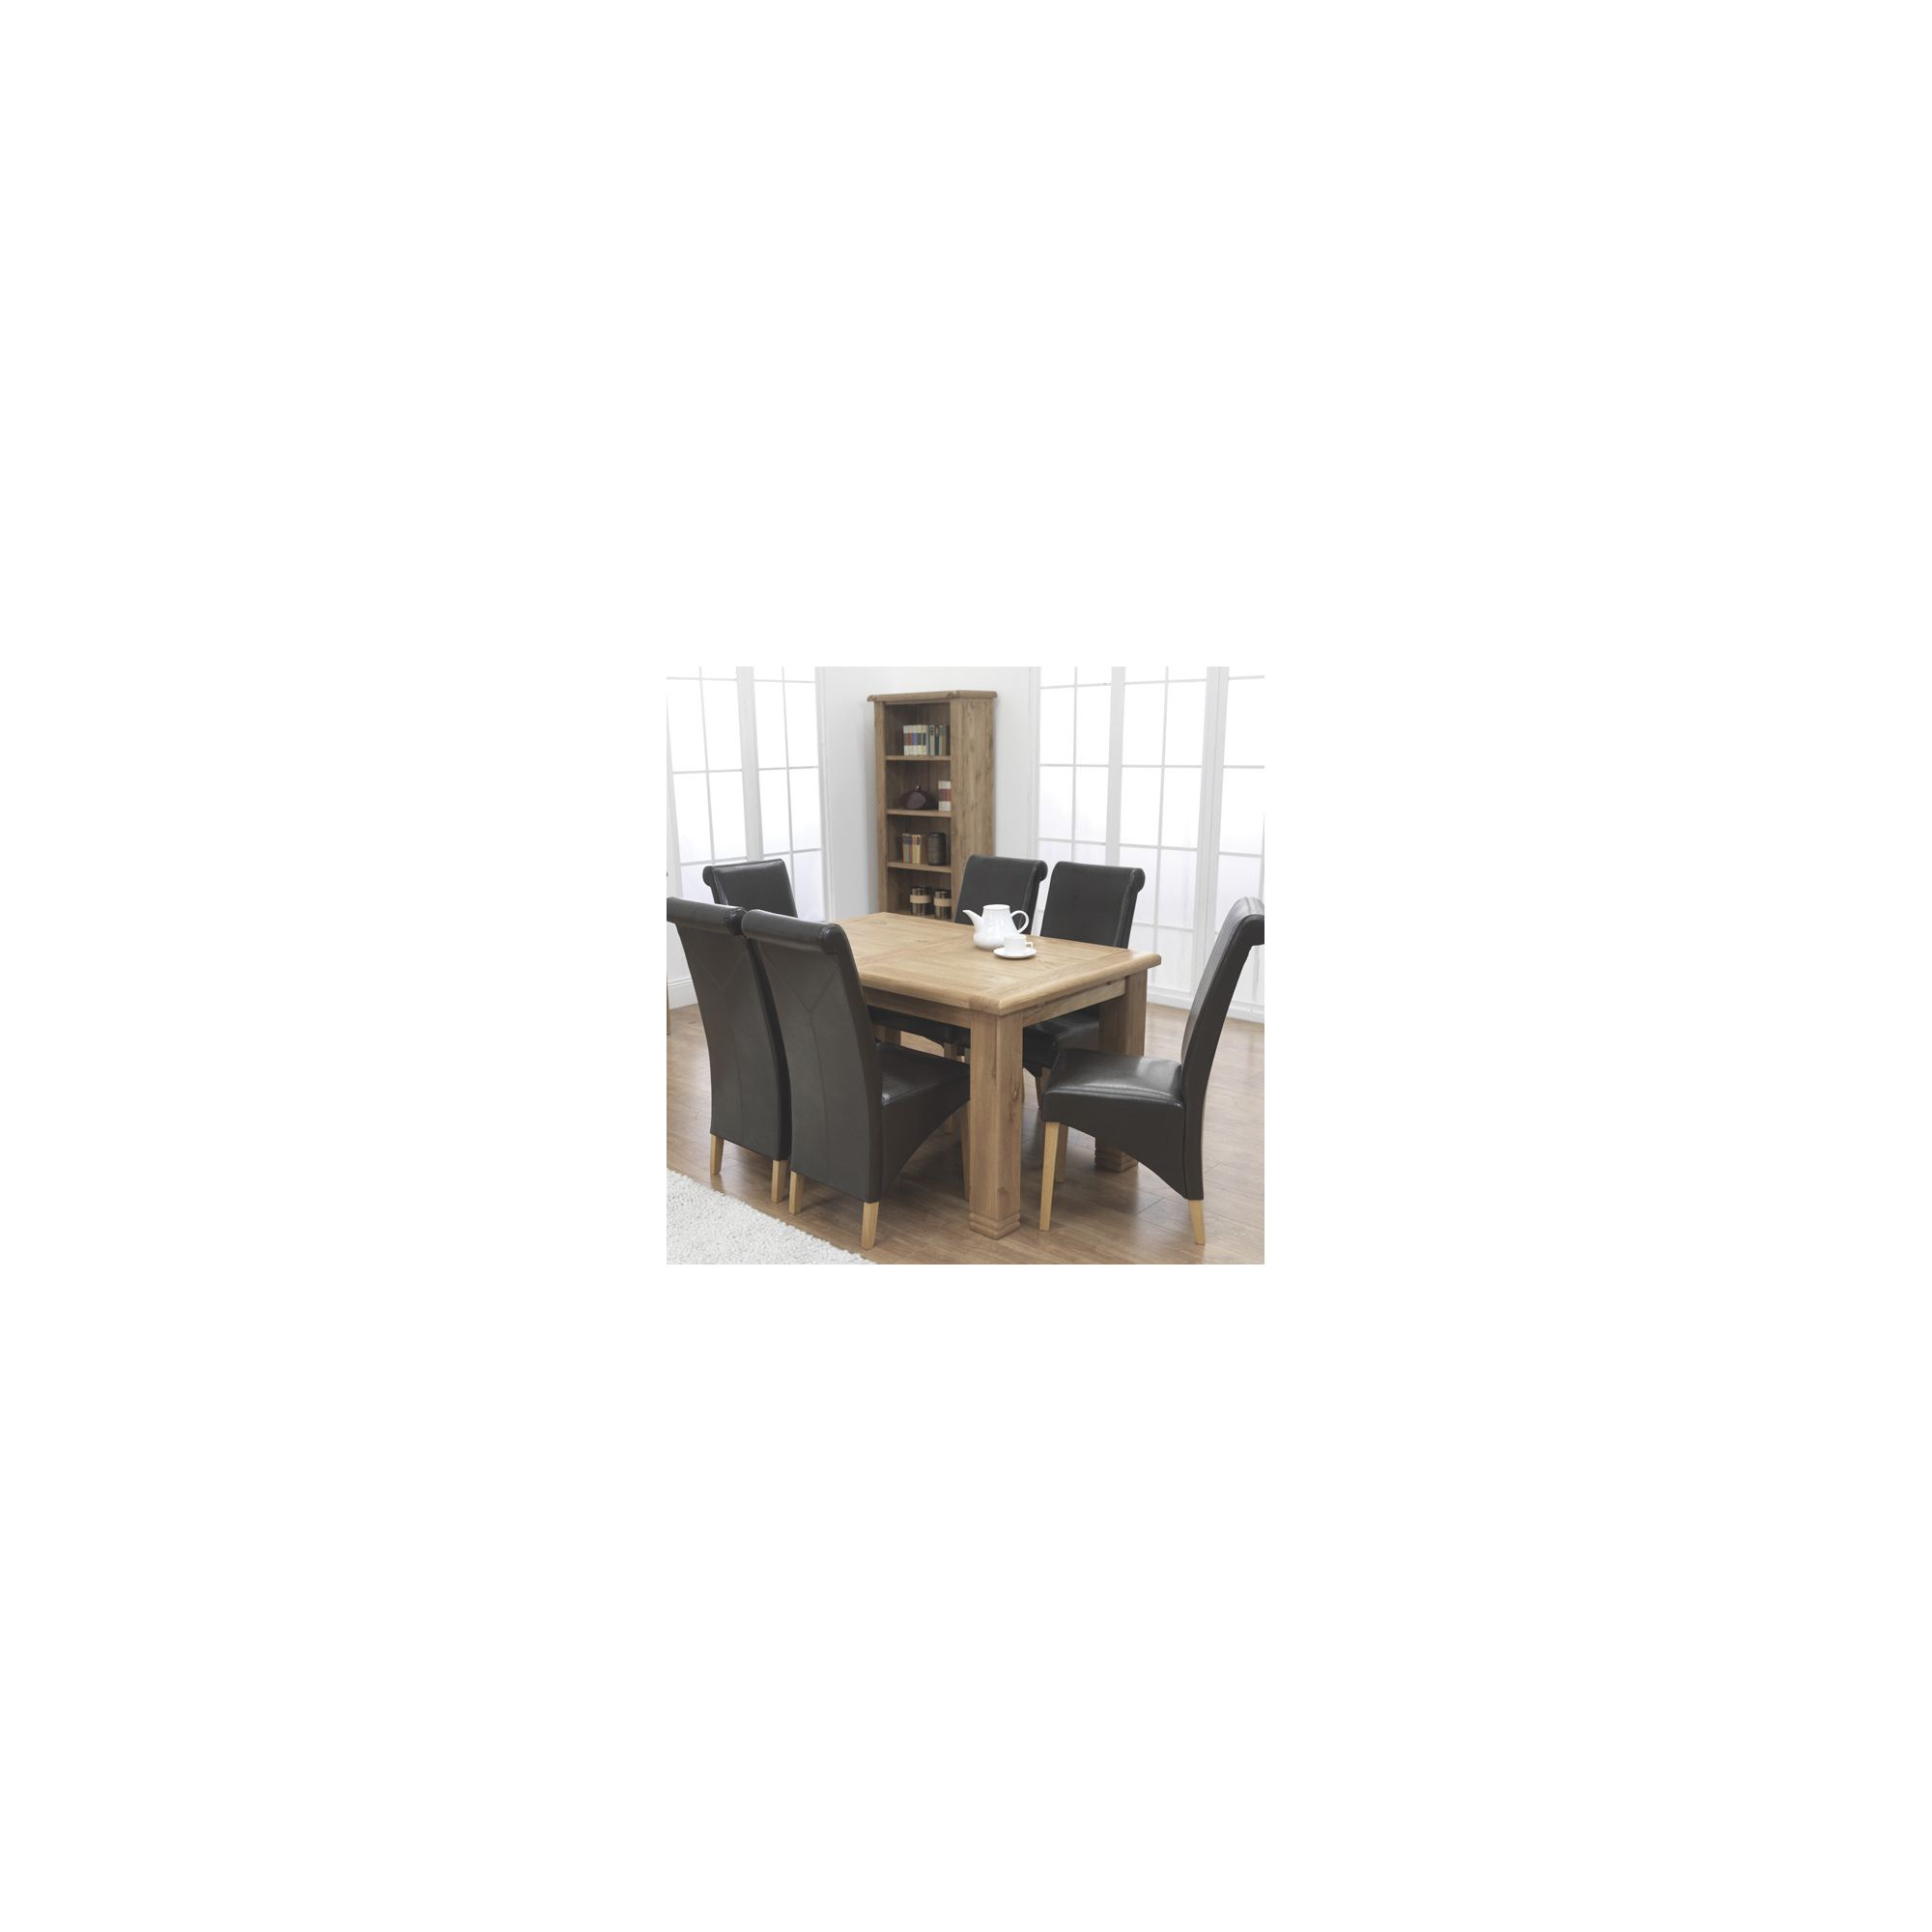 Furniture Link Danube 7 Piece Solid Oak Extending Dining Set with Corban Chair